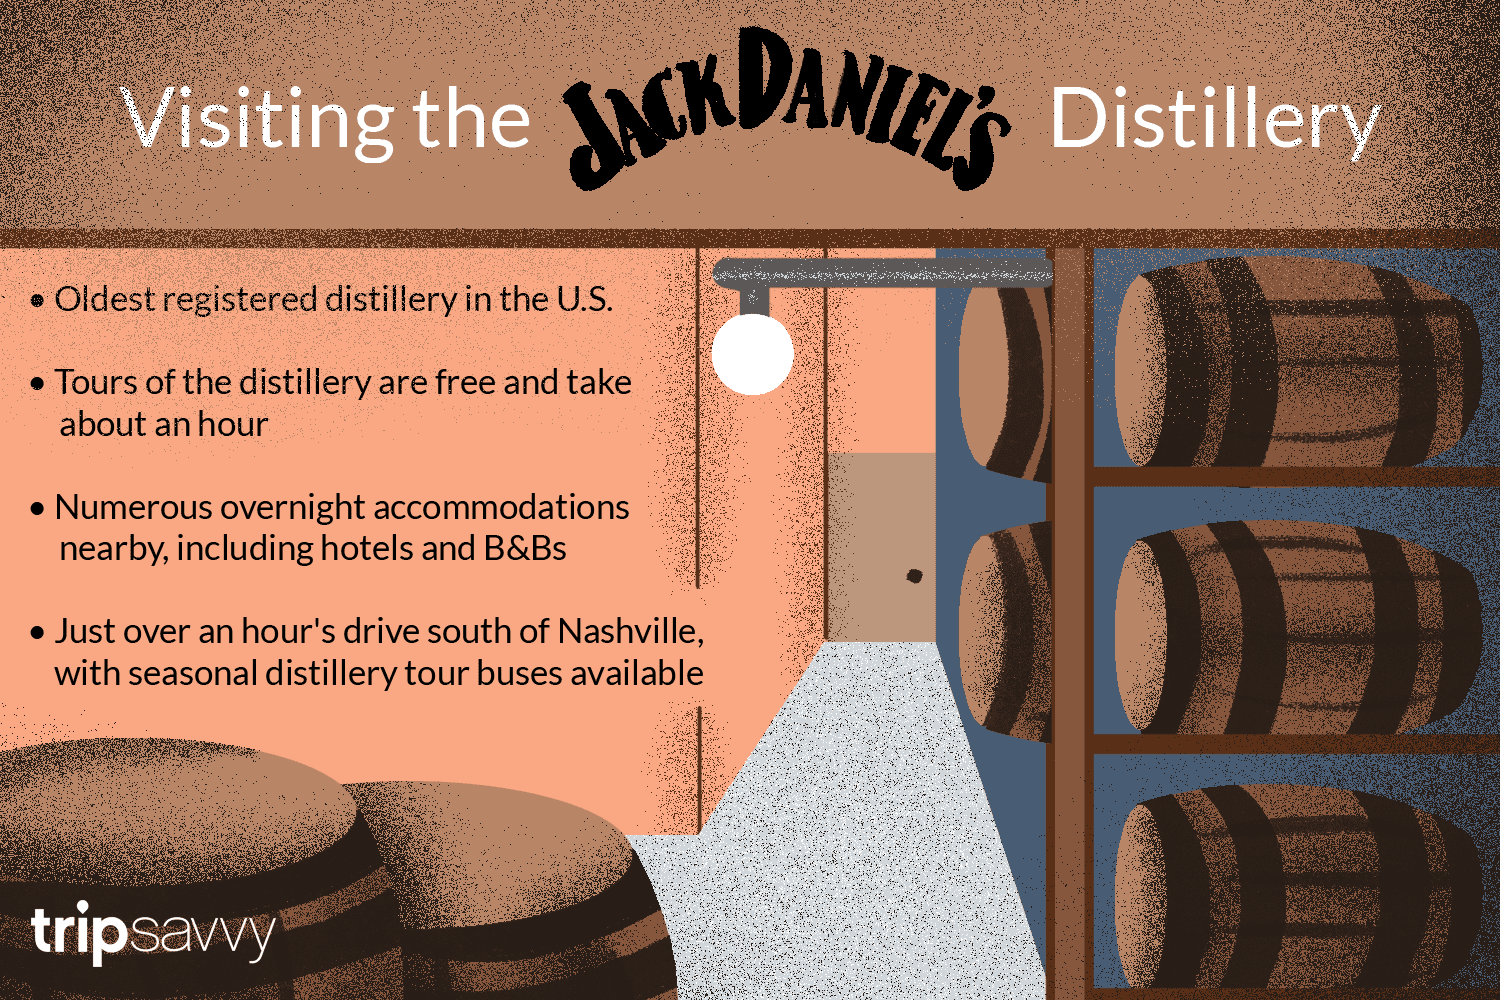 an illustration of the distillery with tips for visiting